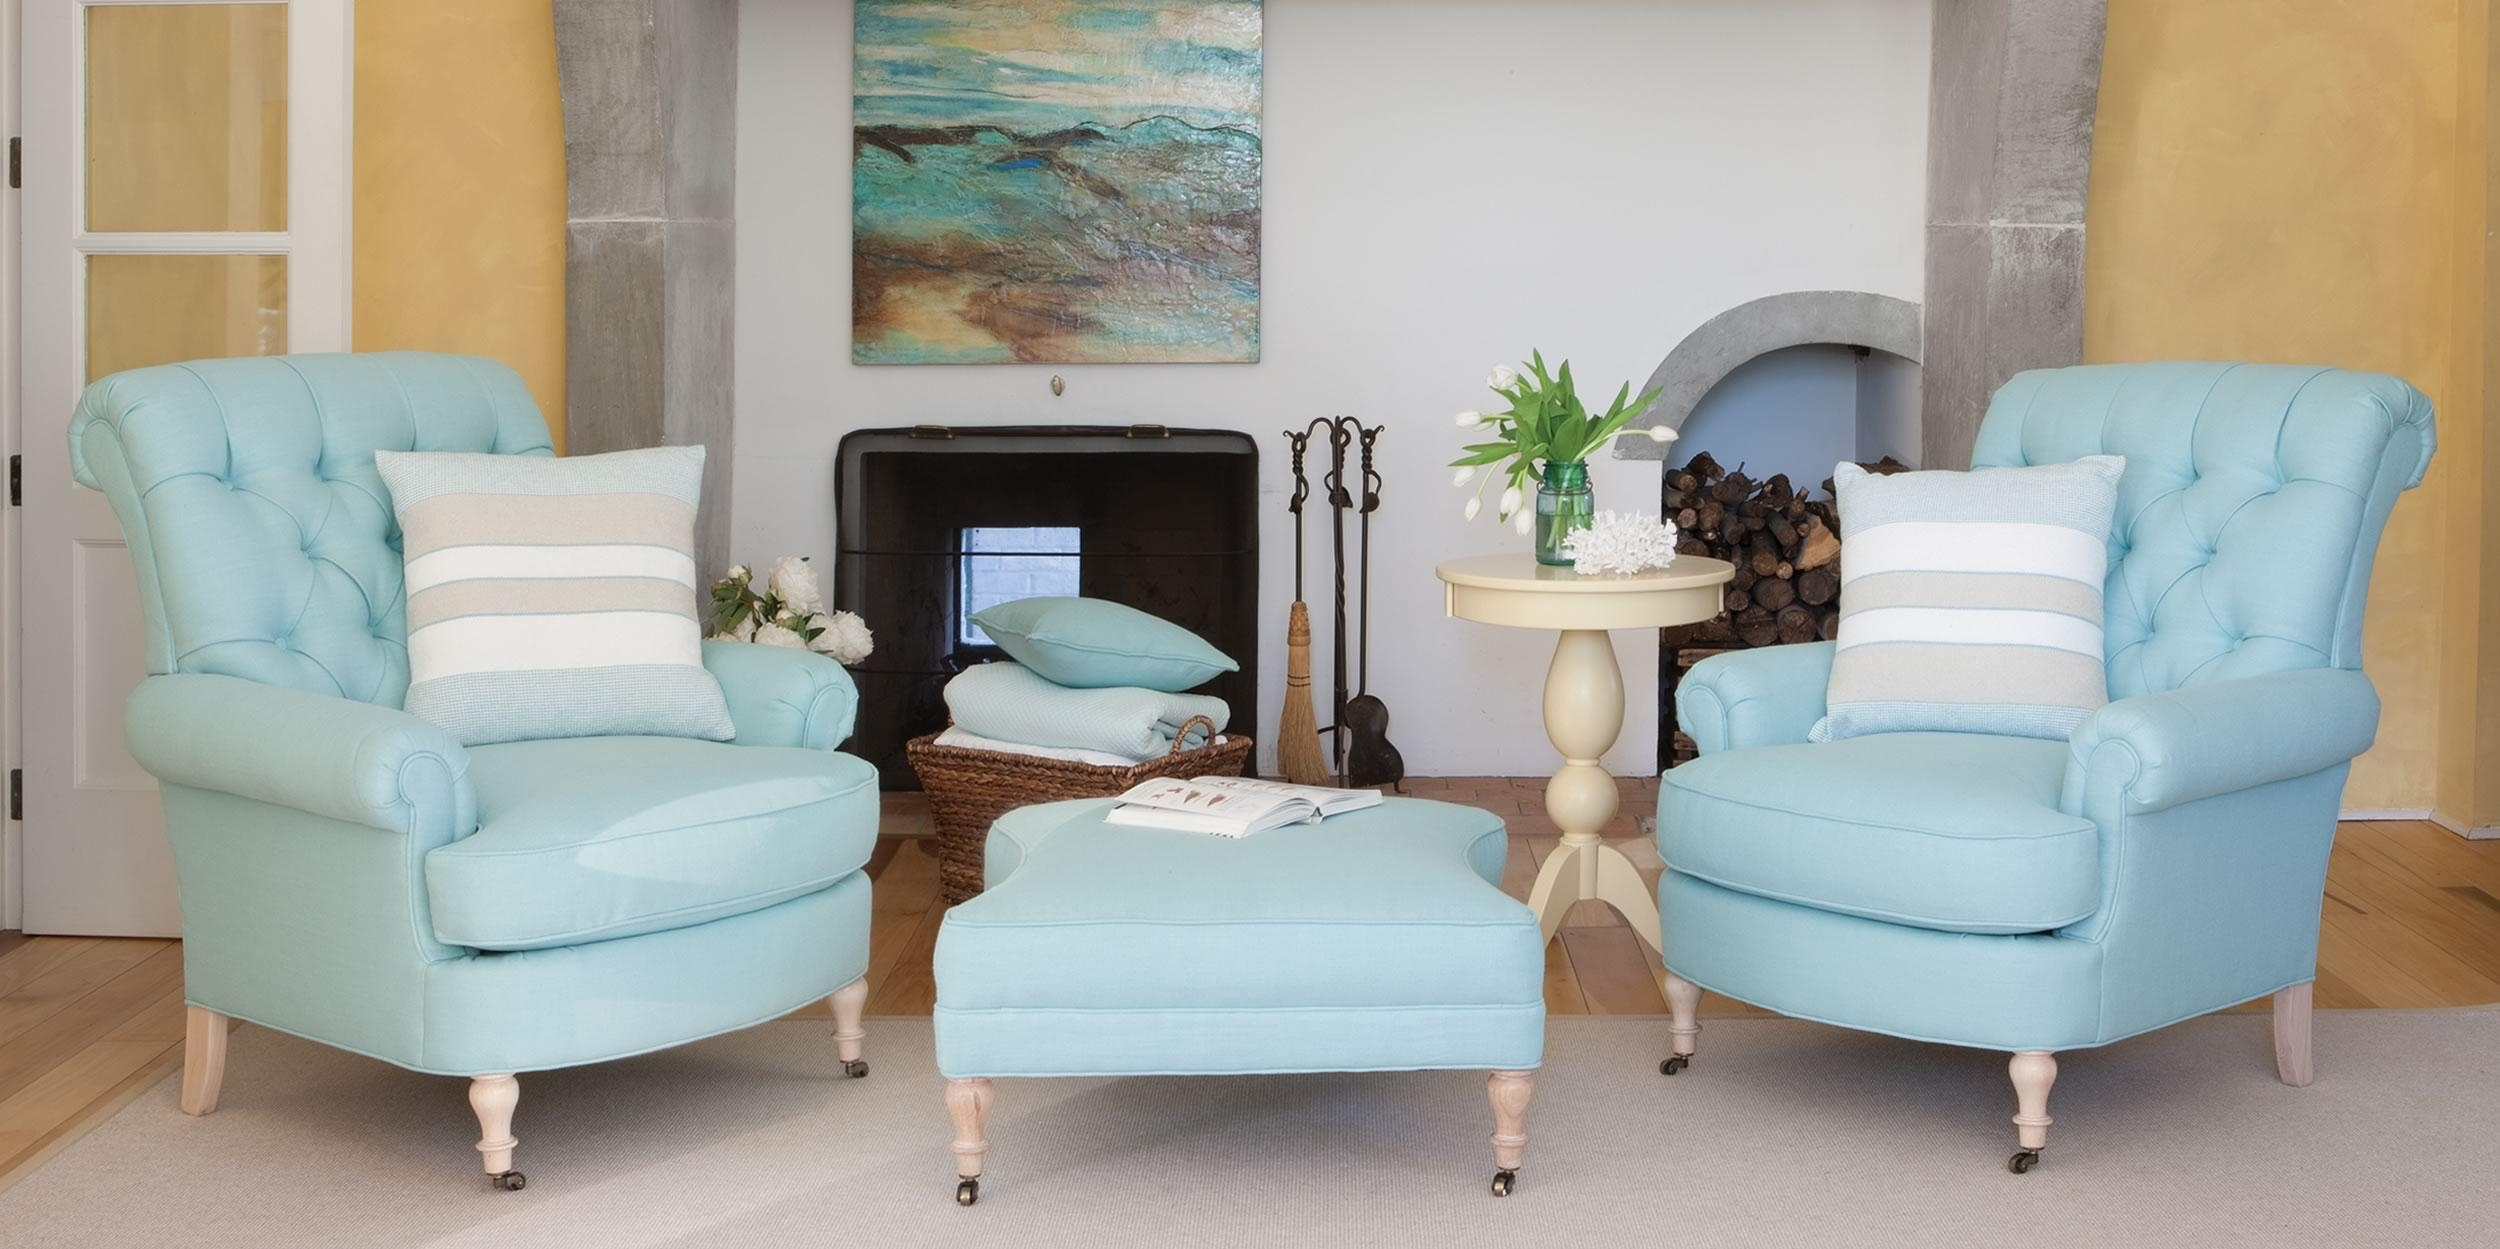 Cottage Sofas For Sale | Tehranmix Decoration With Regard To Cottage Style Sofas And Chairs (Image 3 of 20)